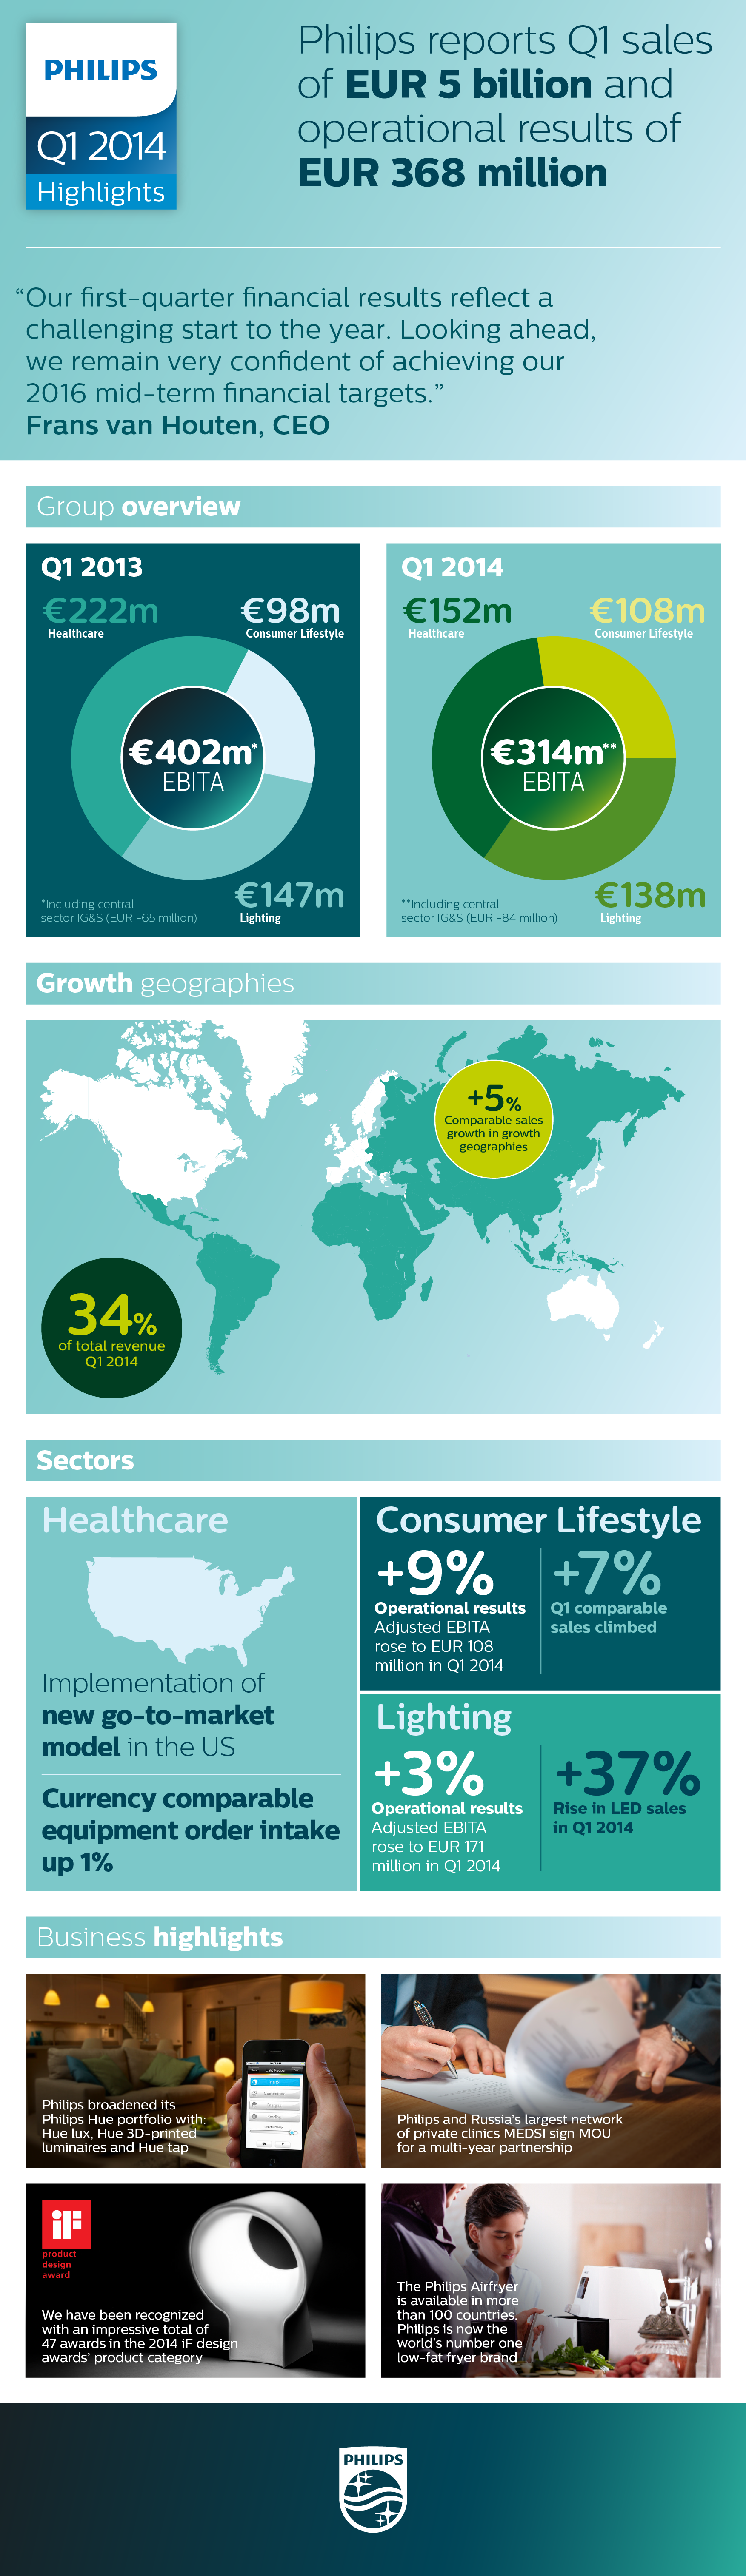 Philips First Quarter Results 2014 Infographic